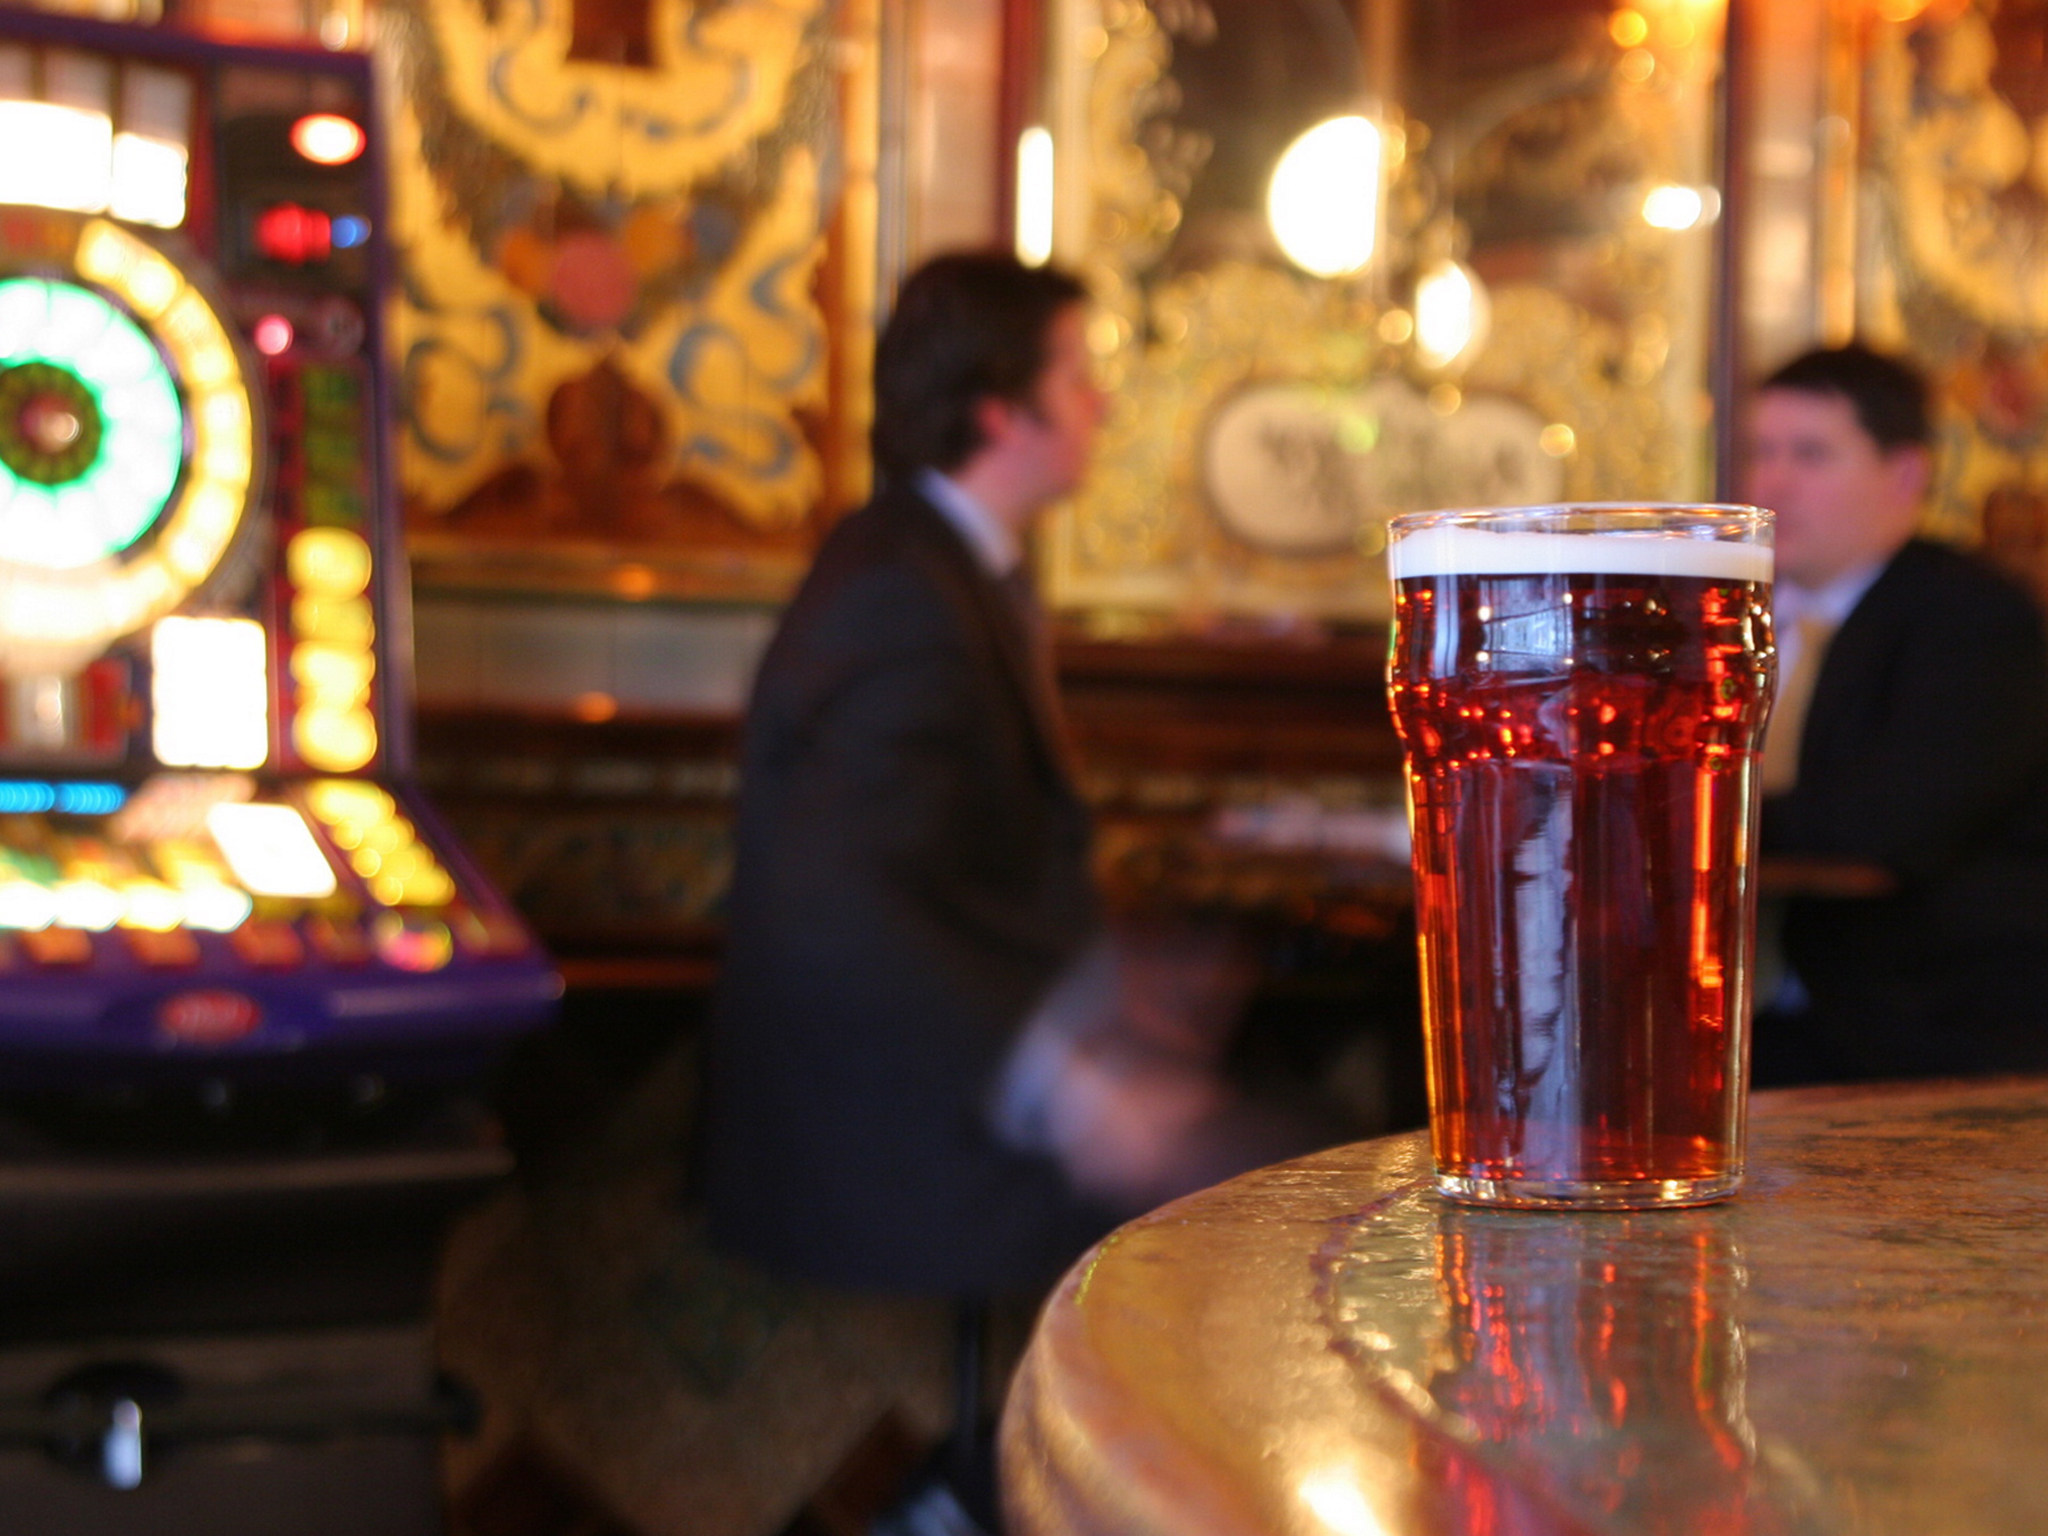 The 100 best bars and pubs in London - Princess Louise, Holborn